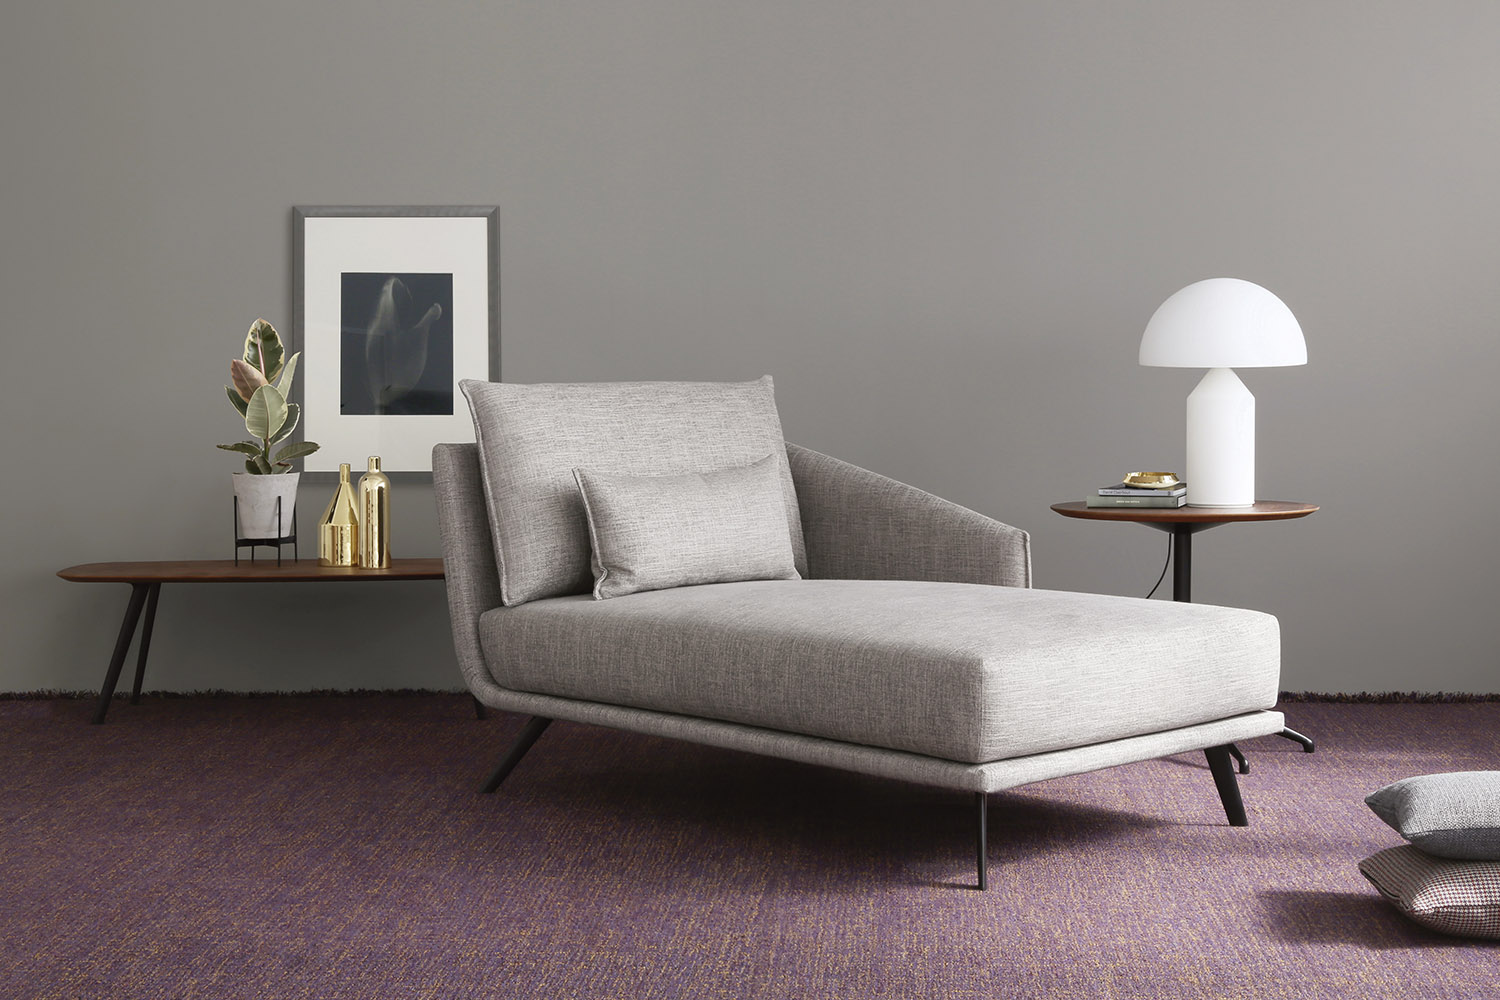 Stua costura sofa collection for Canape poltrone et sofa